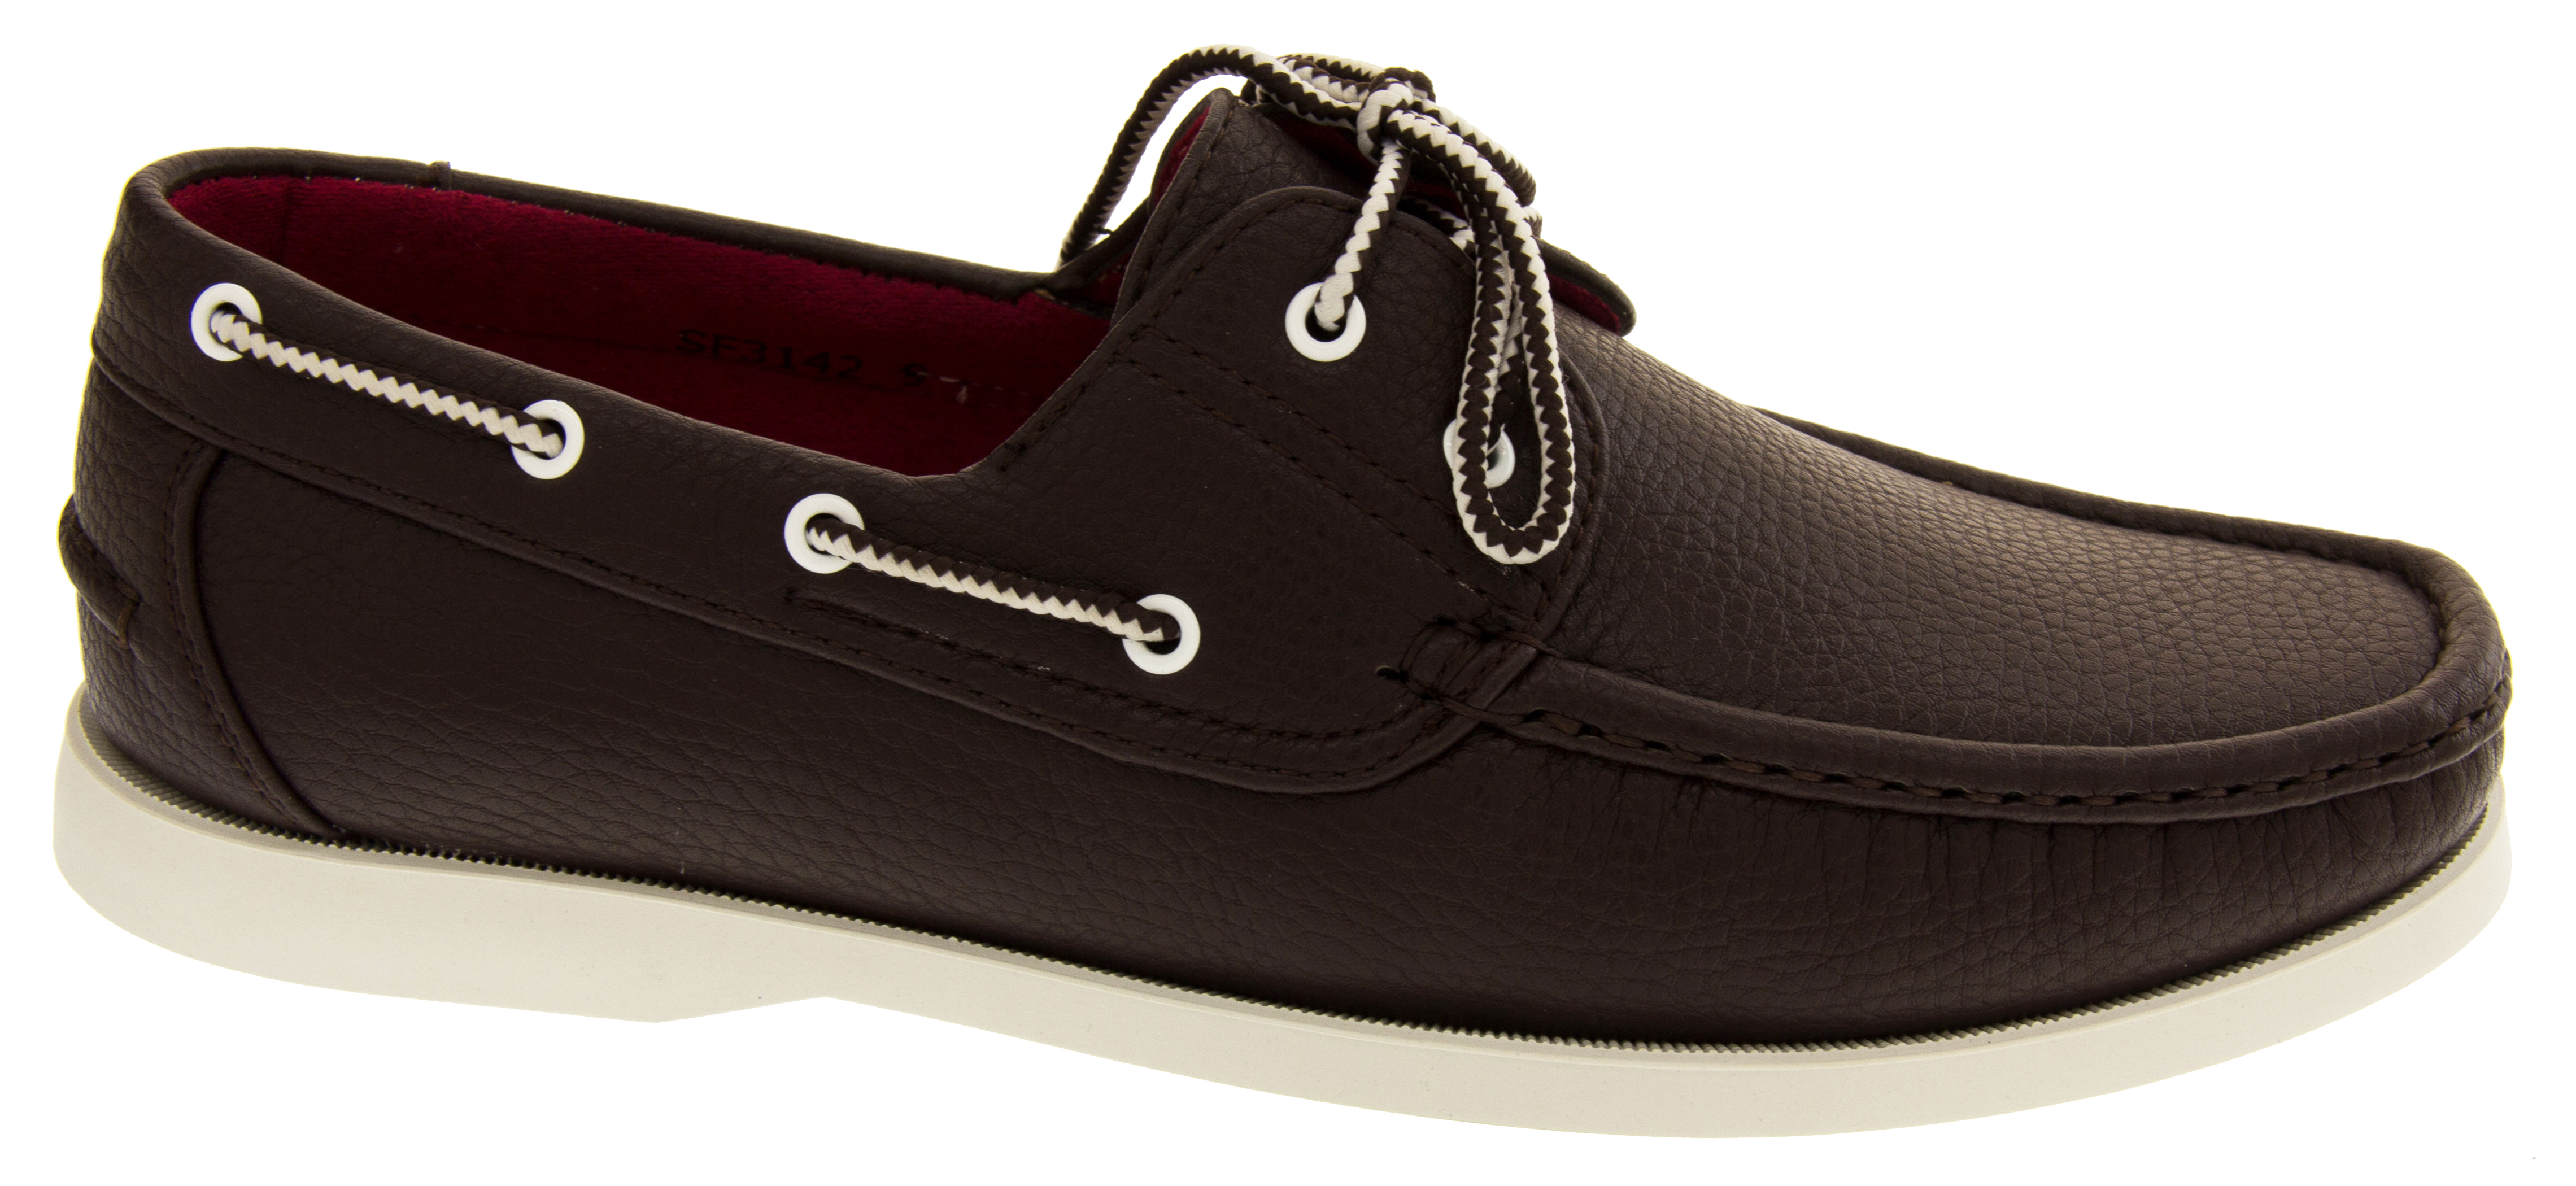 Baby Boat Shoes Uk